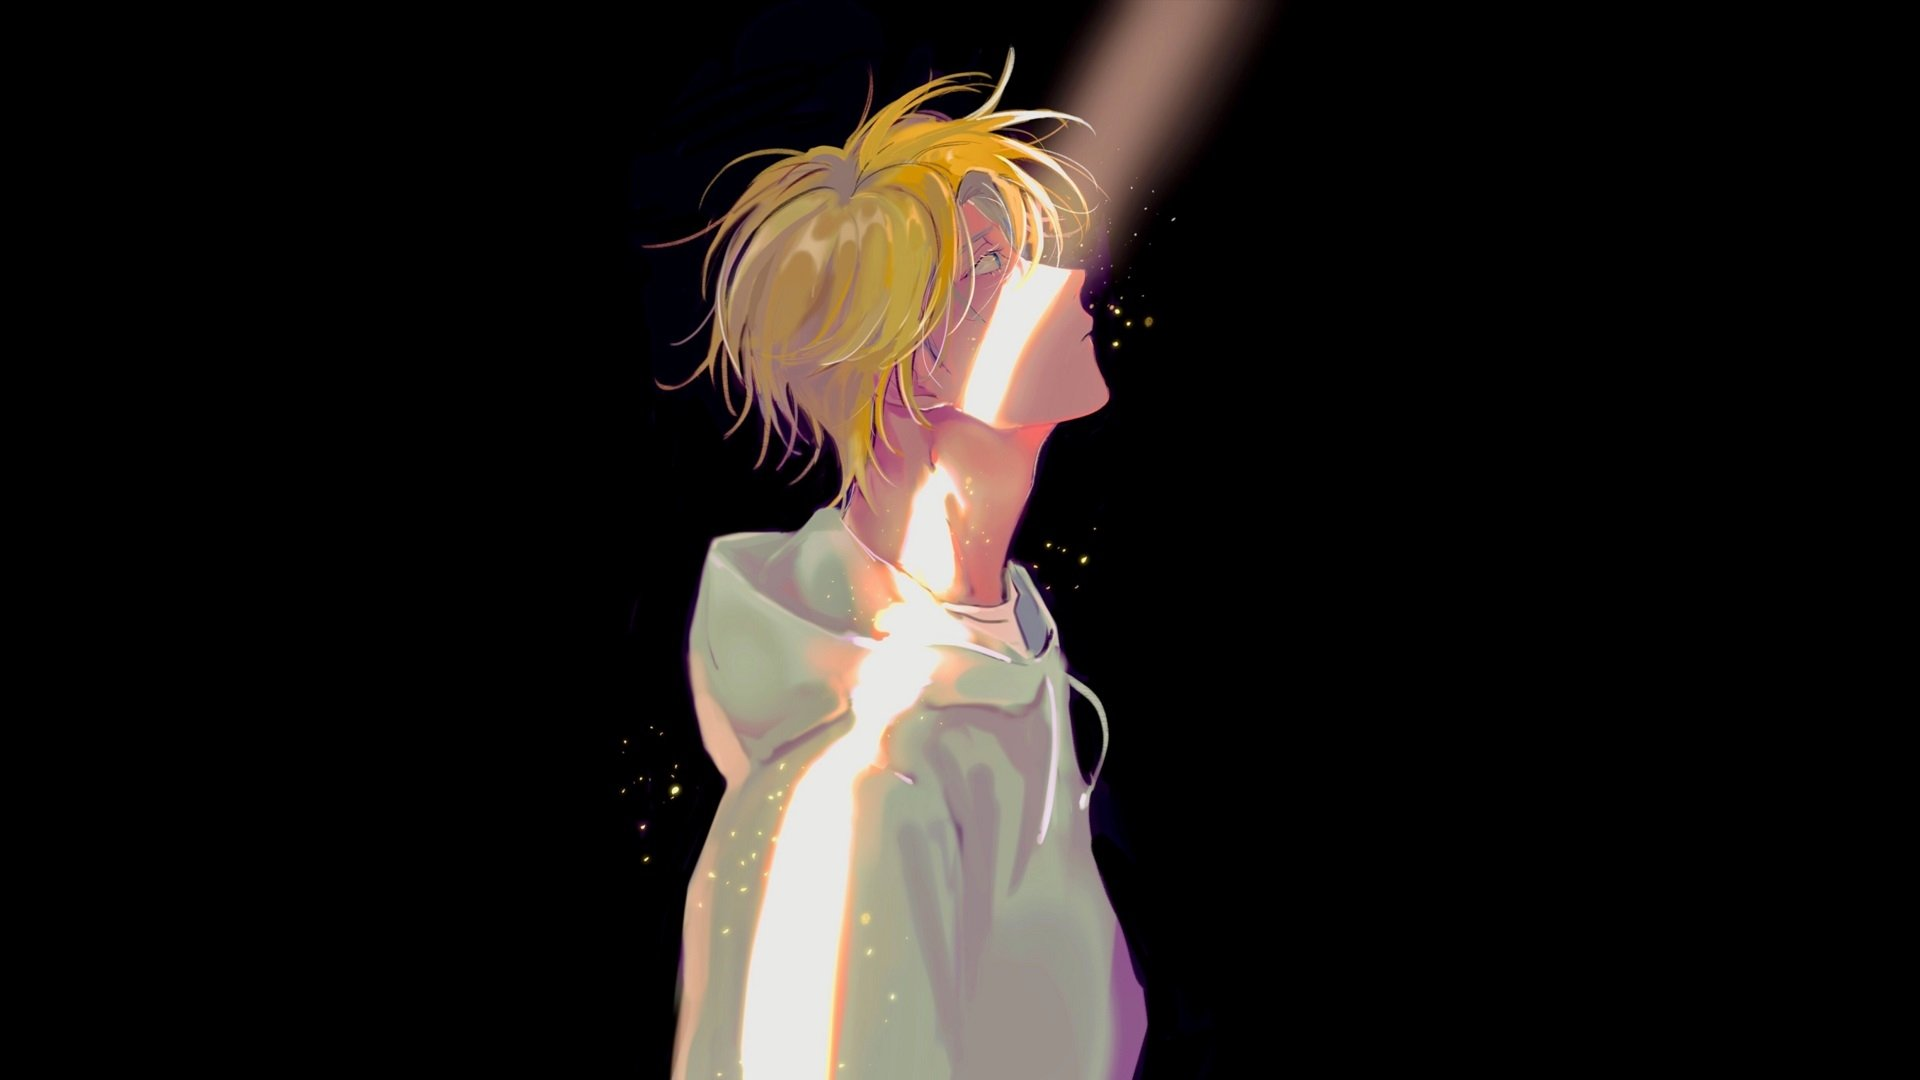 16 Banana Fish Hd Wallpapers Background Images Wallpaper Abyss